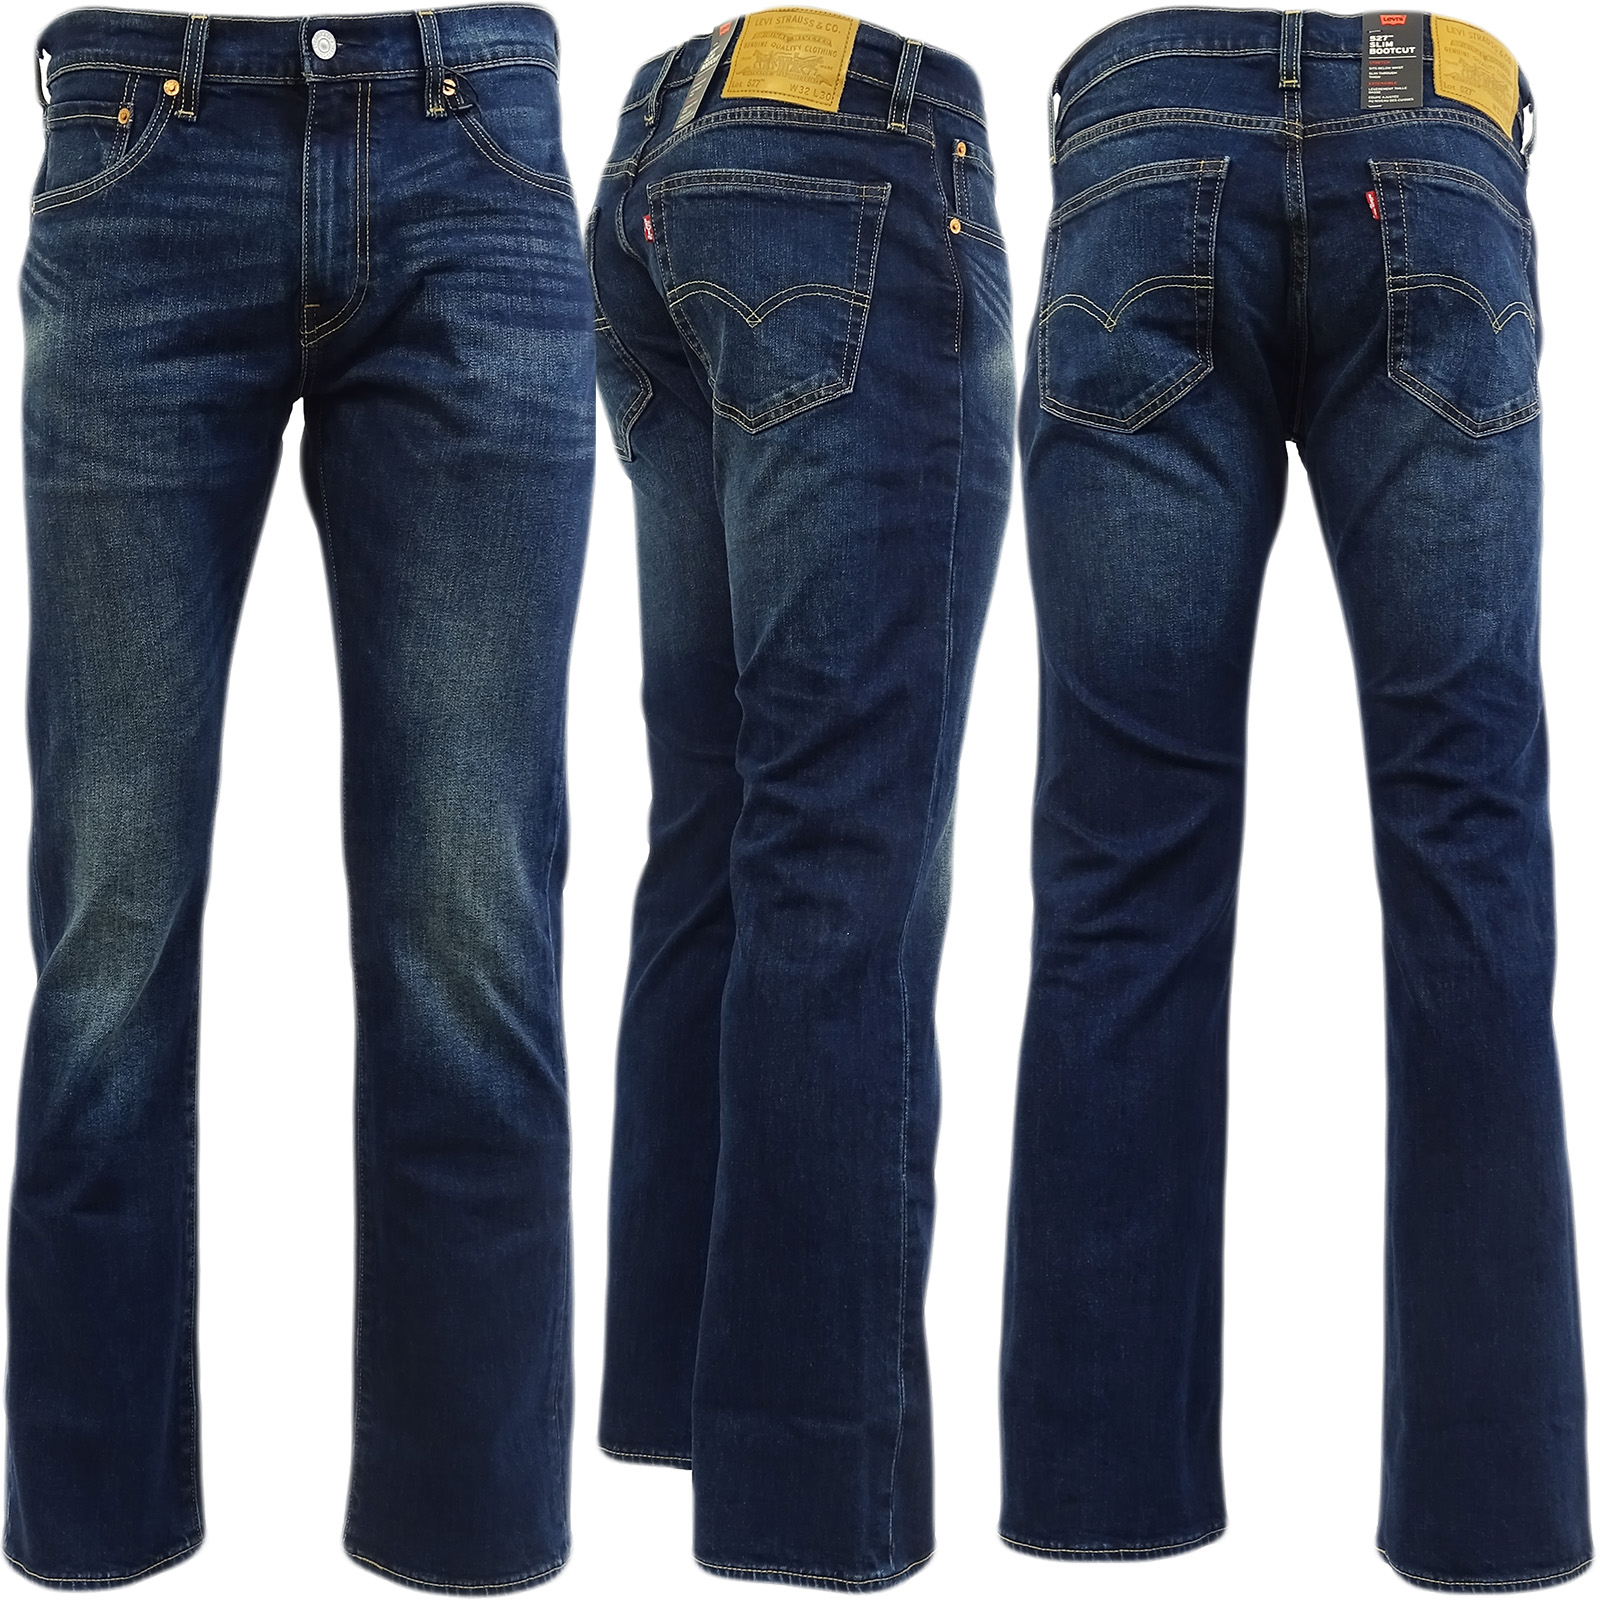 Levi Strauss 527 Bootcut Jean Dark Blue With Fading Sequoia 05-62